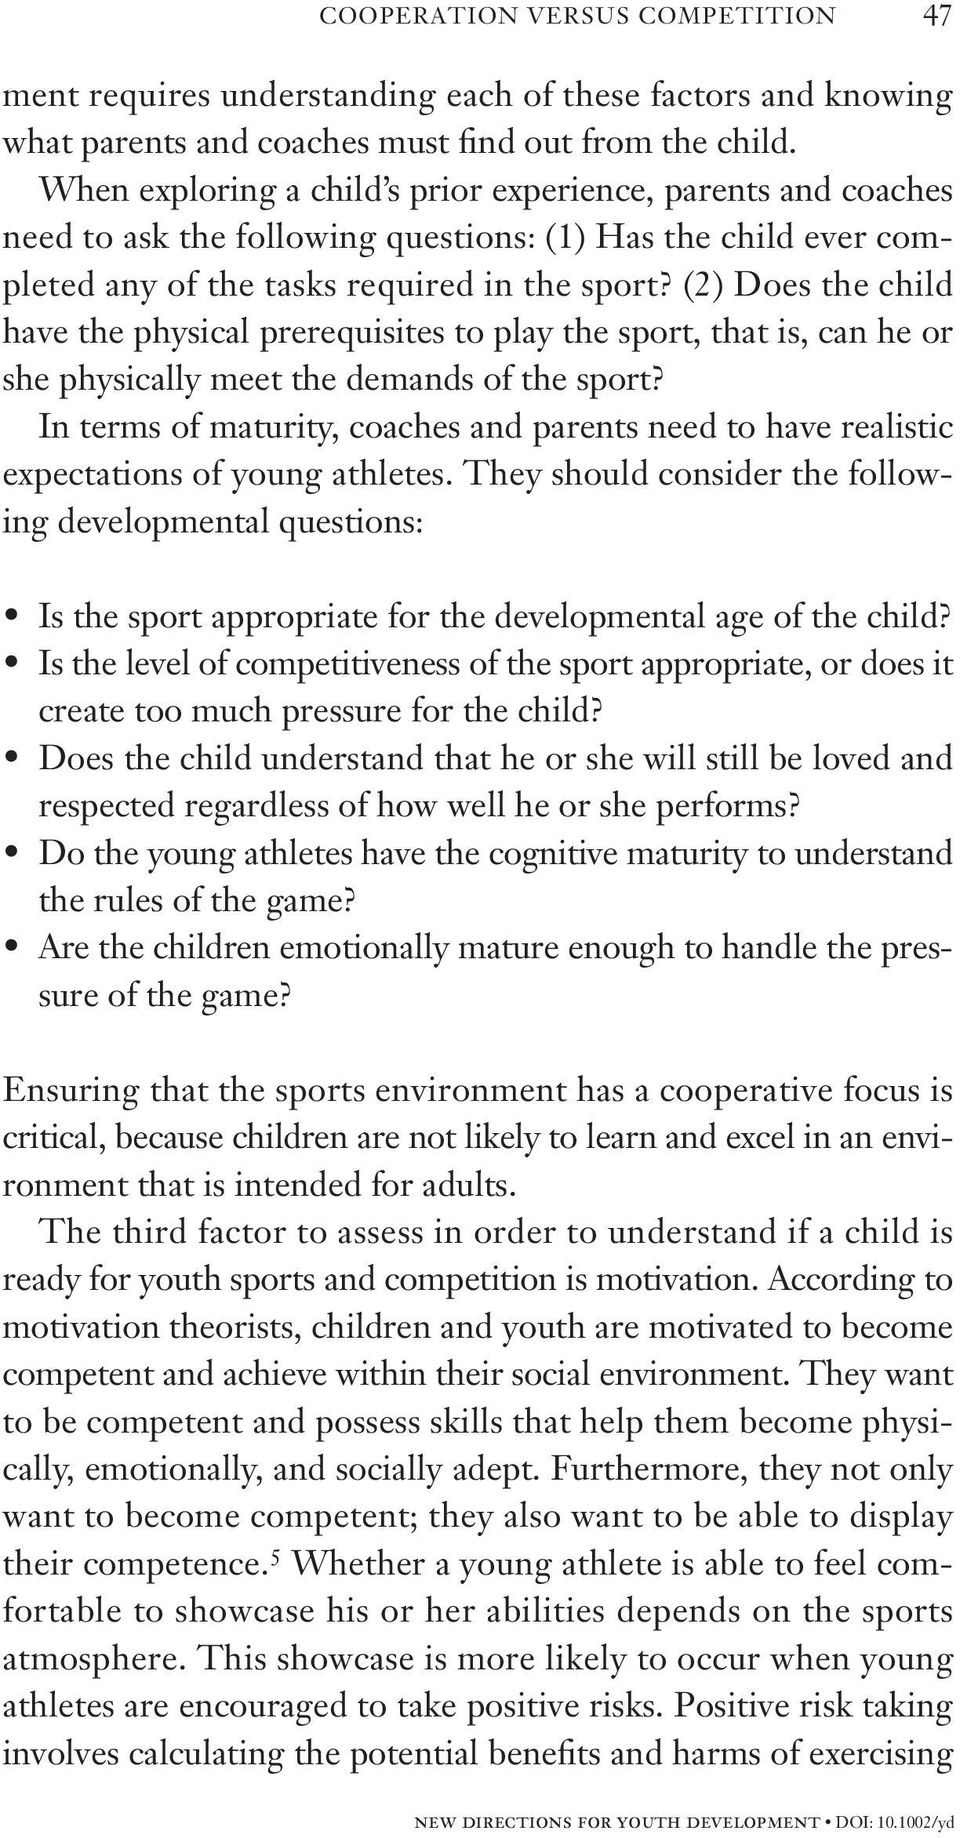 (2) Does the child have the physical prerequisites to play the sport, that is, can he or she physically meet the demands of the sport?